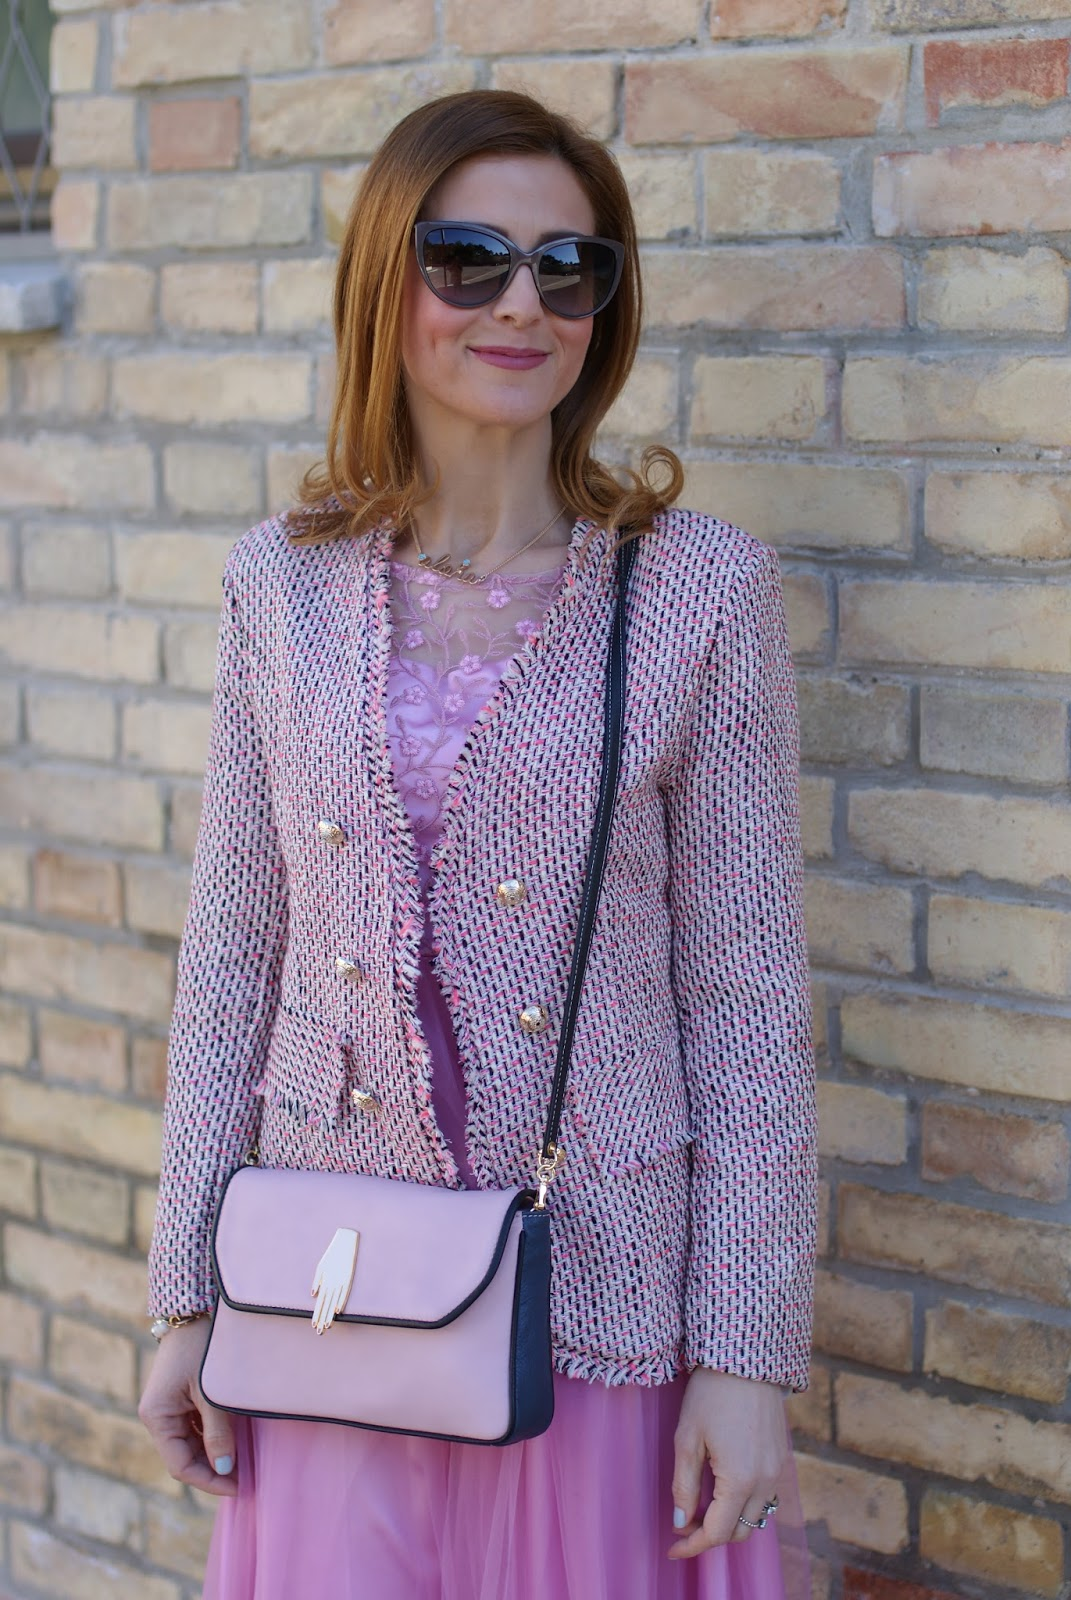 Chanel tweed inspired jacket, Mac Mehr lipstick and Pink midi tulle dress for a romantic outfit on Fashion and Cookies fashion blog, fashion blogger style